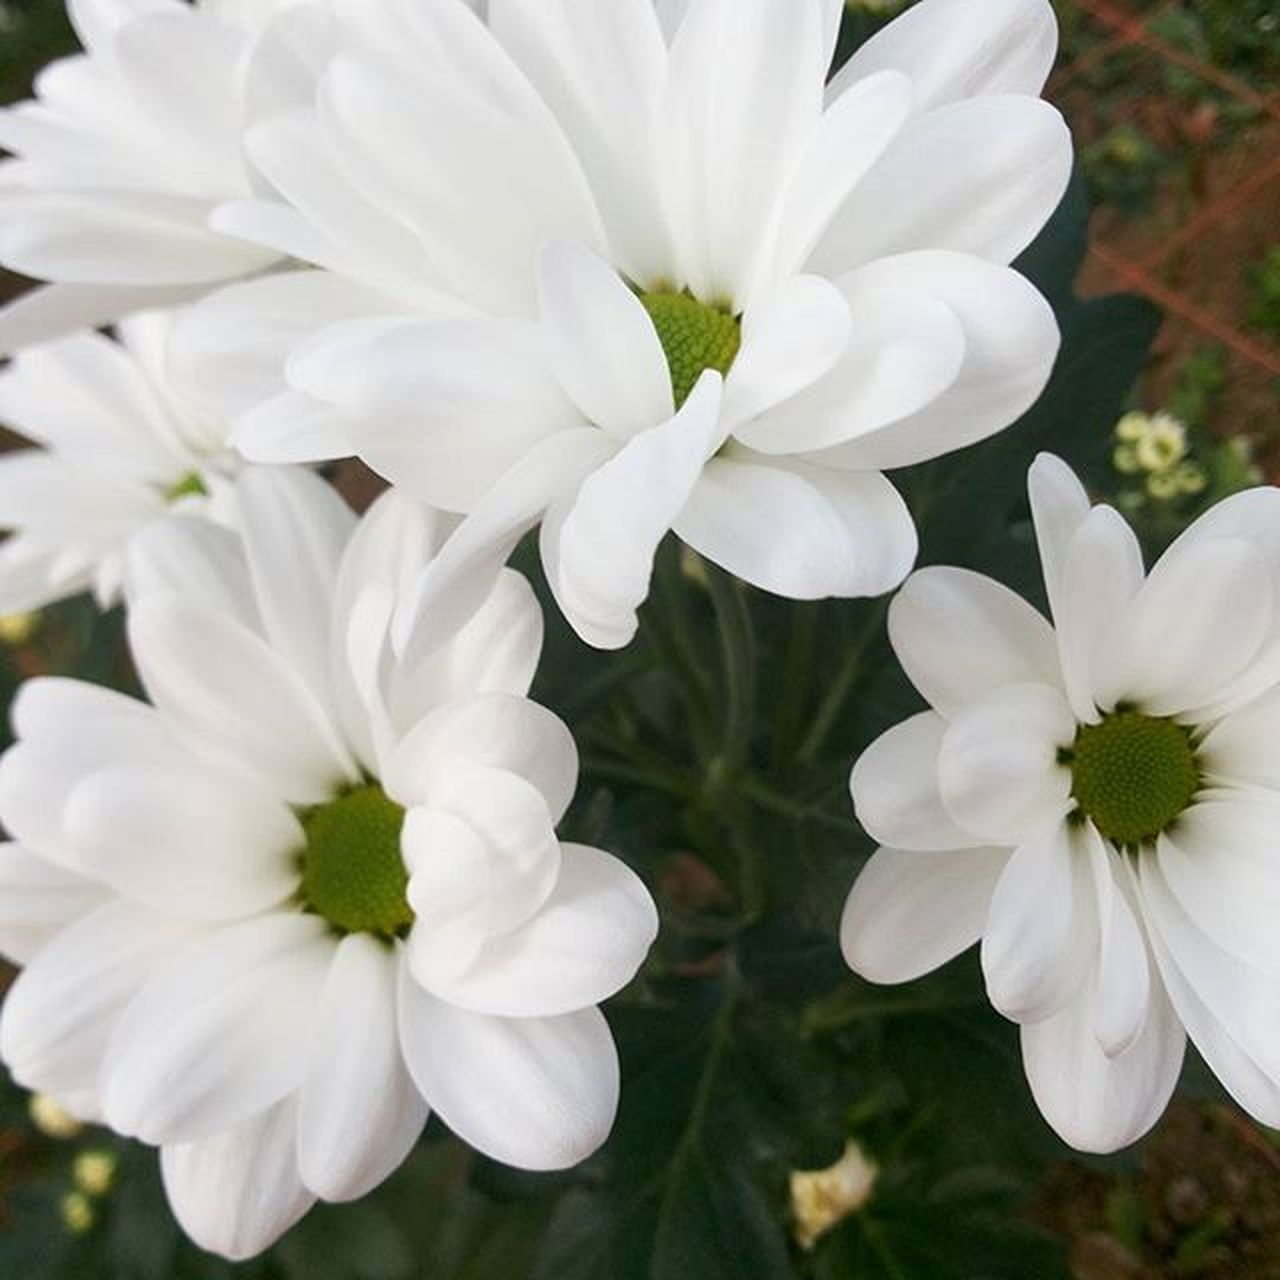 White Crysanthemum...so pure and refreshing,. White Chrysanthemum Flower Beautiful Creation Japan Tahara